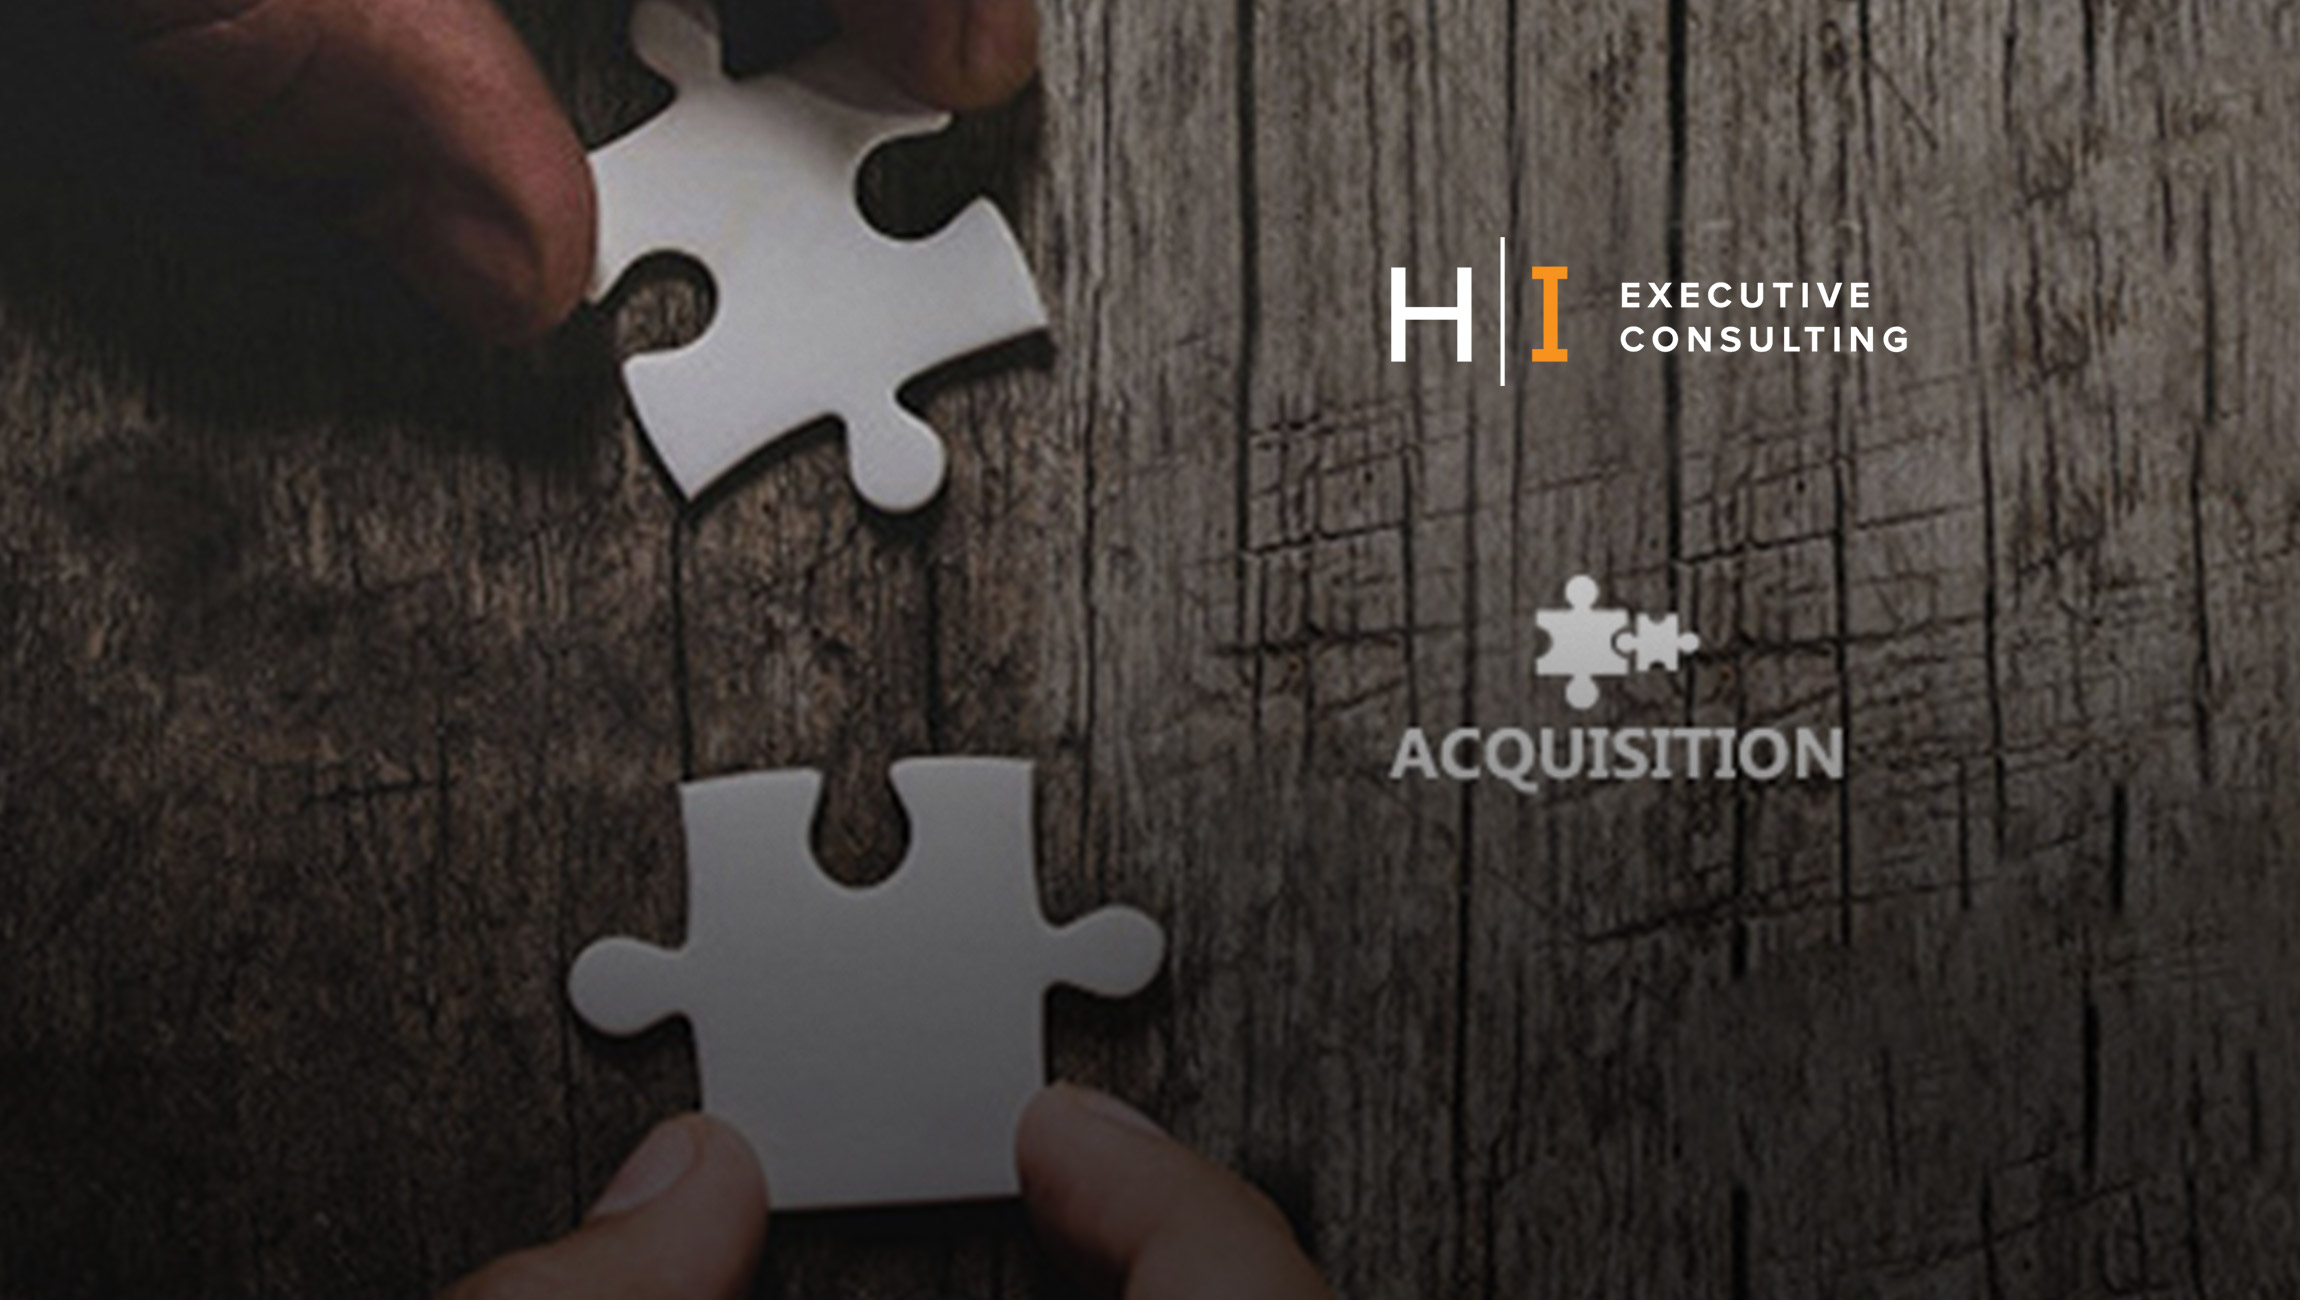 H.I. Executive Consulting (HIEC) Acquires Stanton Chase International (Switzerland) Ltd.